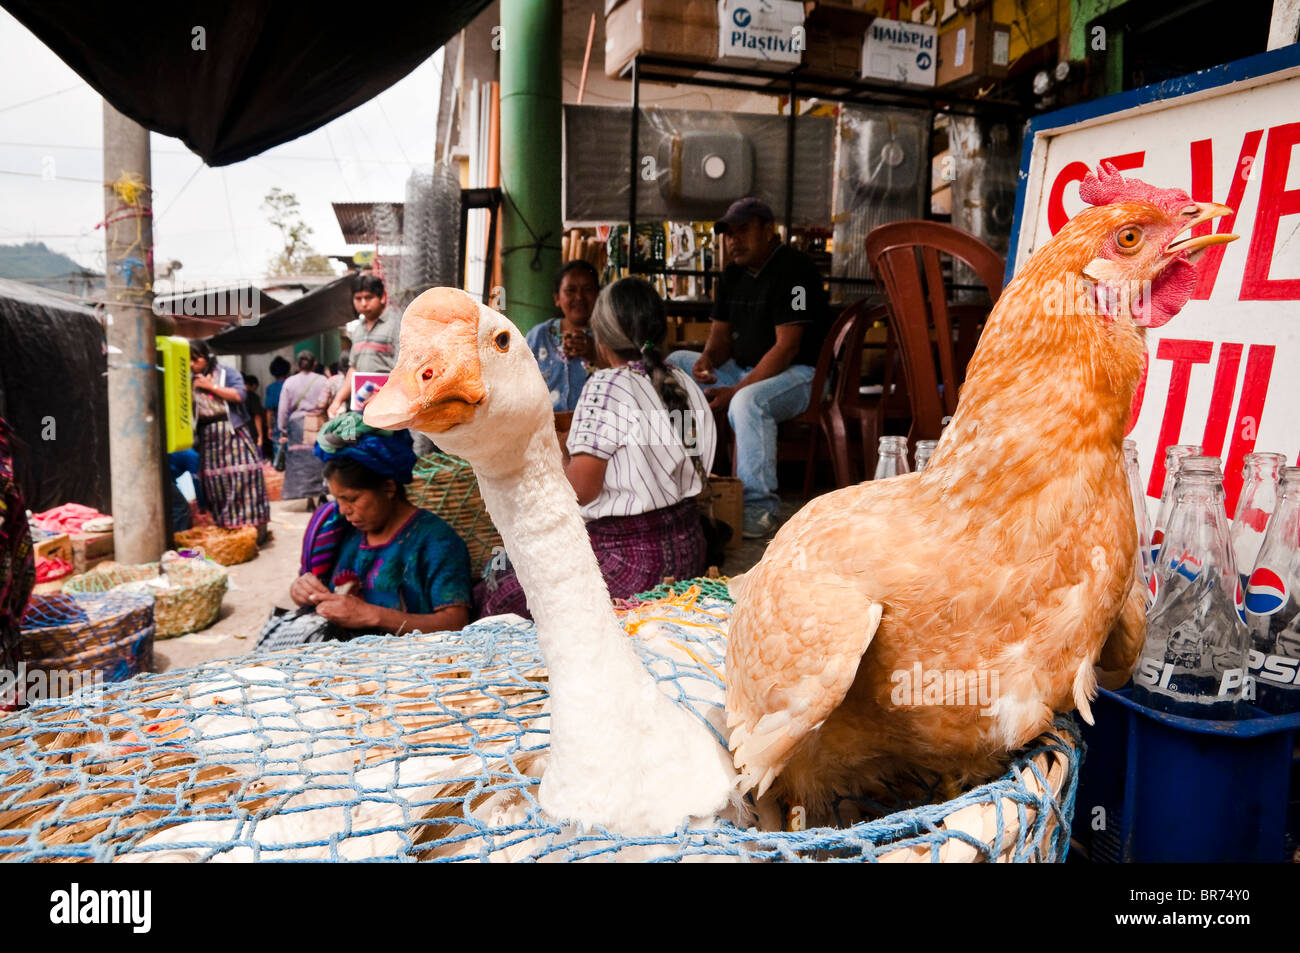 The traditional Solola Market 'The Chicken Point', Solola, Guatemala. - Stock Image